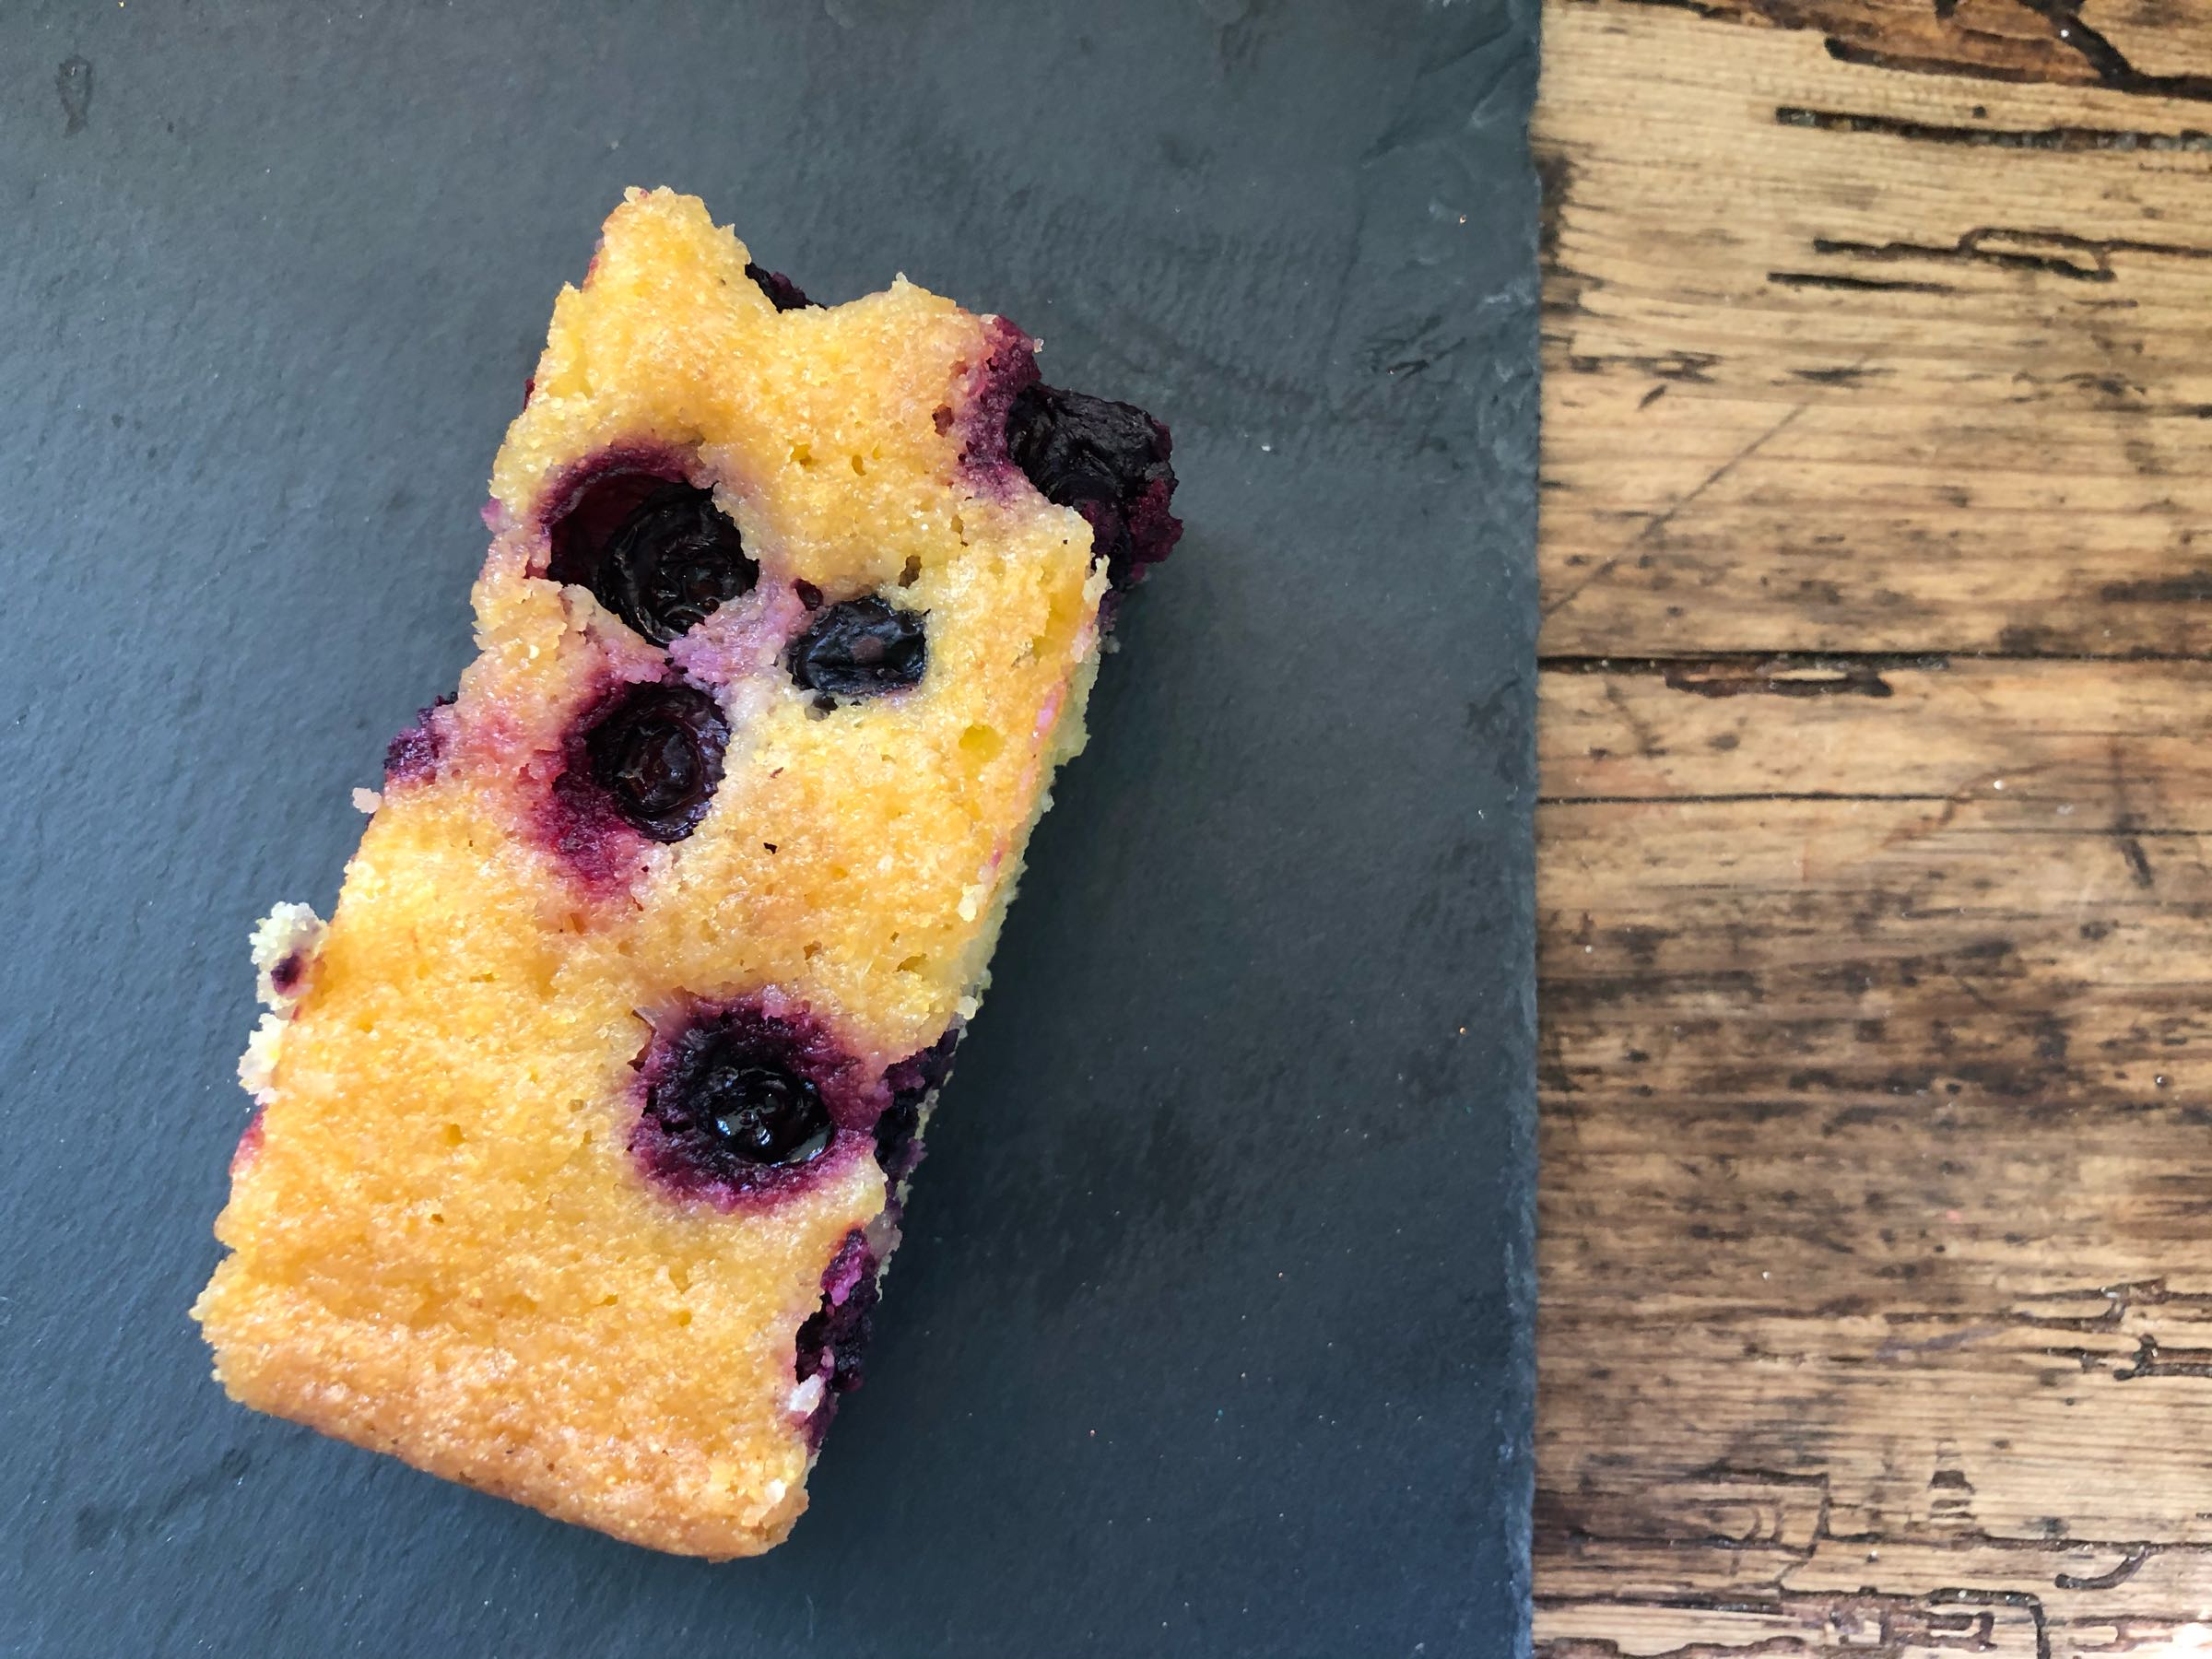 Blueberry Lime & Almond Polenta Slice